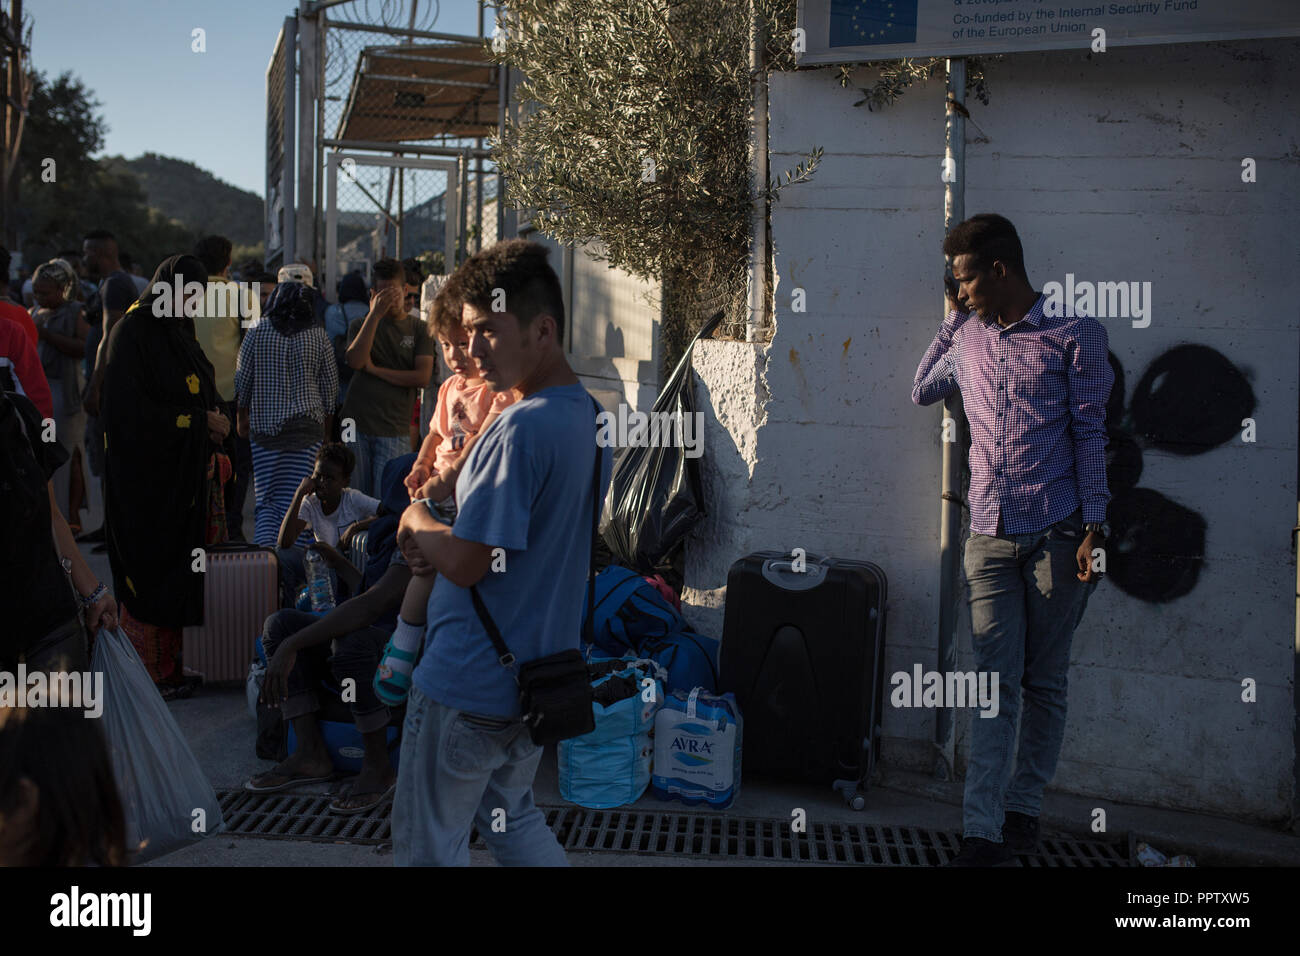 Moira, Greece. 24th Sep, 2018. Refugees are waiting for a bus to take them from the refugee camp Moria to Mitilini. From there they want to take a ship to Athens. Credit: Socrates Baltagiannis/dpa/Alamy Live News - Stock Image